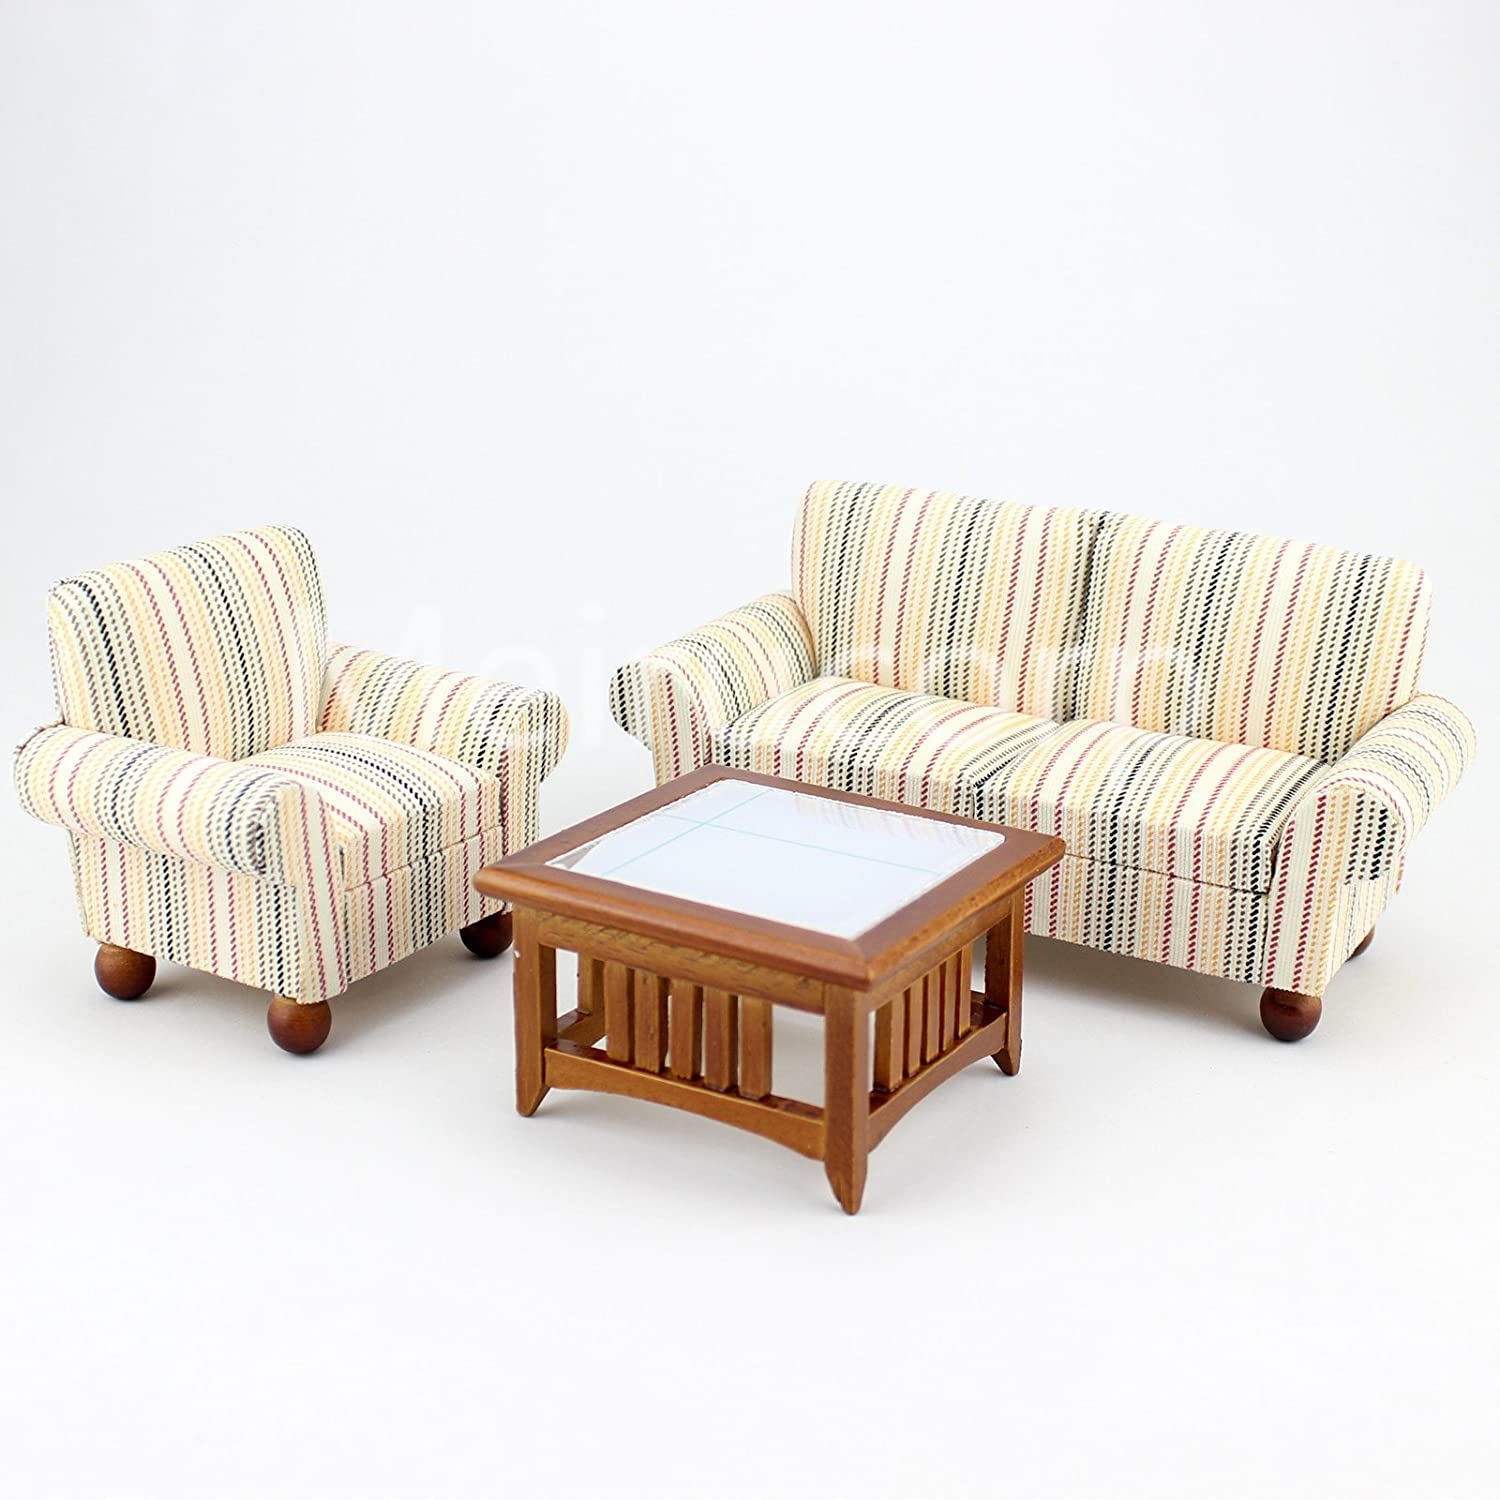 Cool Meirucorp Dollhouse 1 12 Scale Miniature Furniture Striped Sofa Chair And Tea Table Parlor 3Pcs 12227 Andrewgaddart Wooden Chair Designs For Living Room Andrewgaddartcom